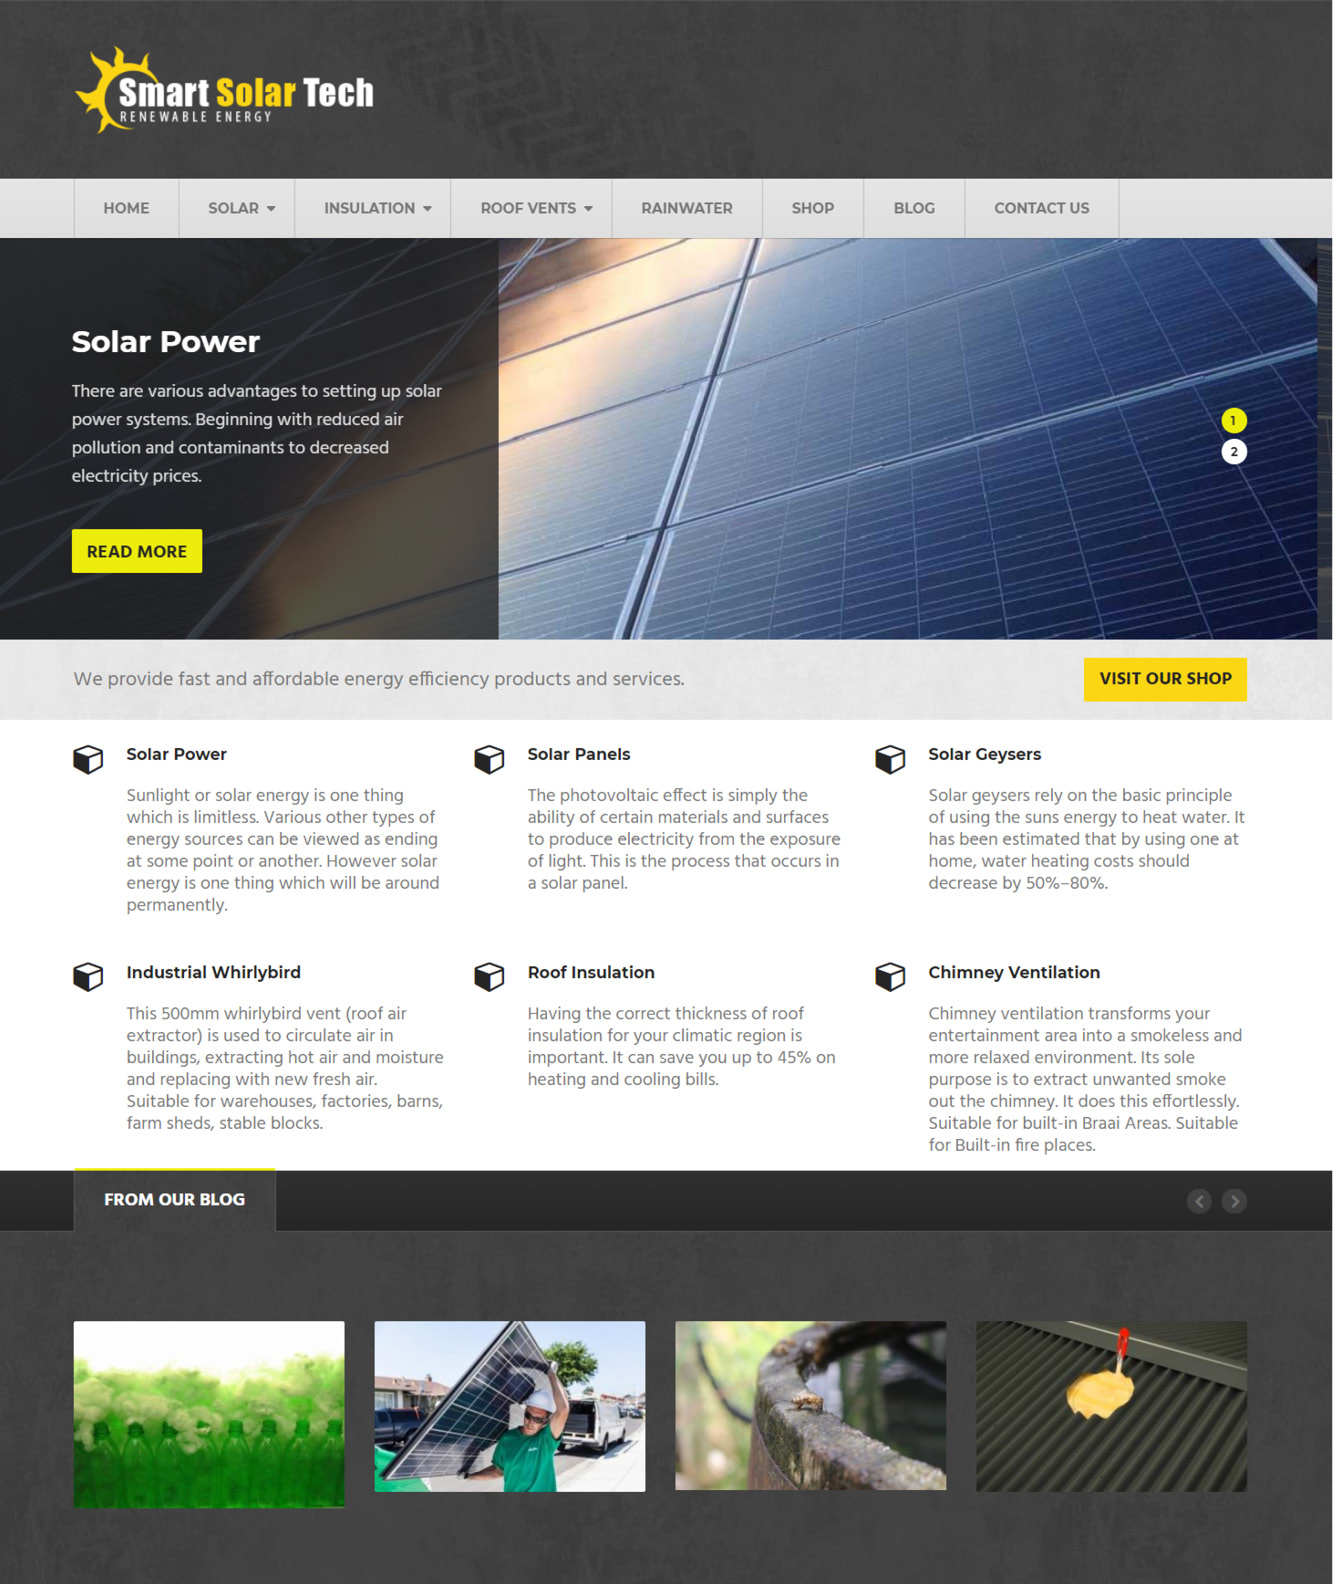 Smart Solar Tech Website Design